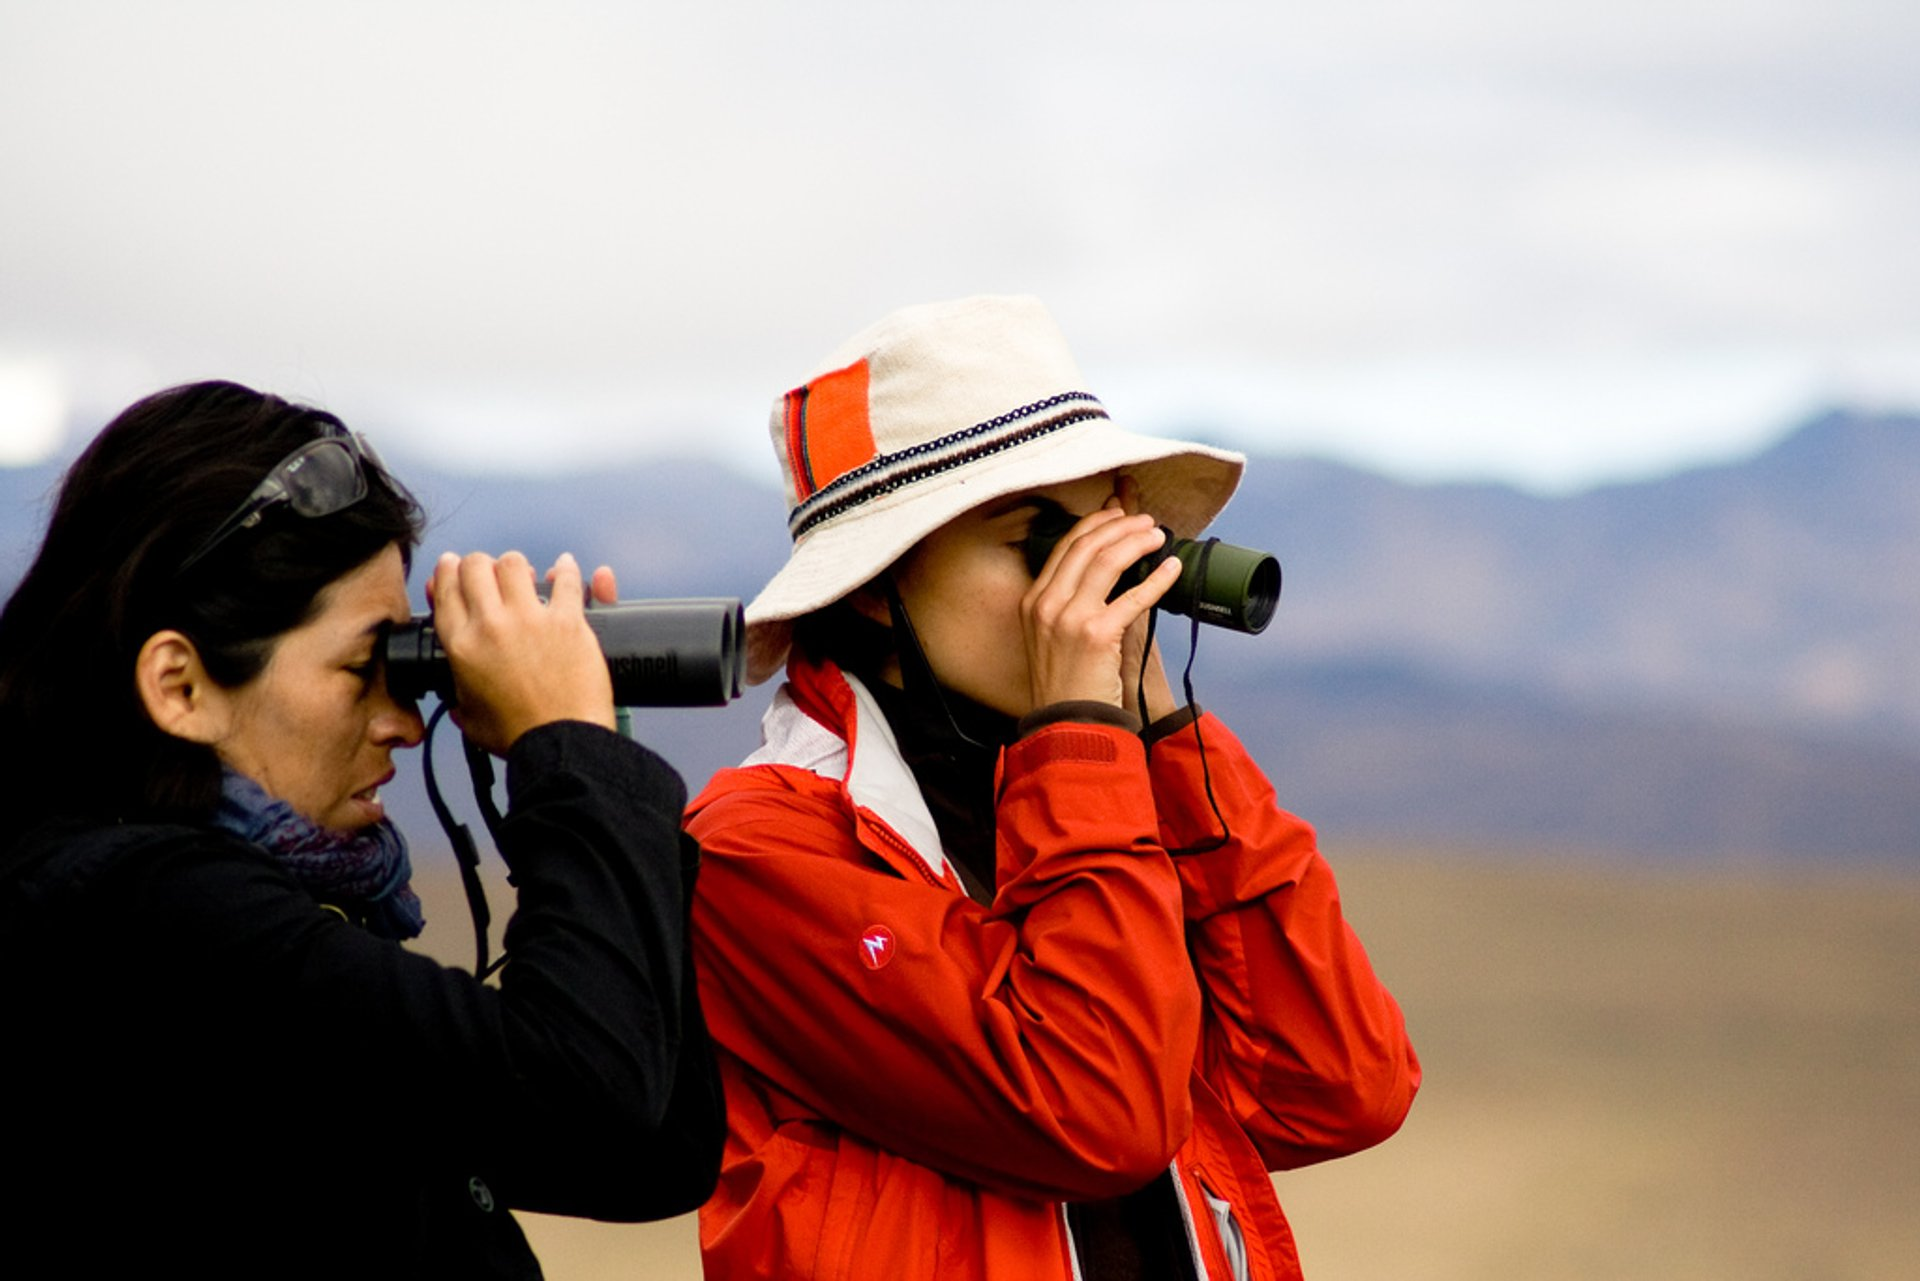 Birdwatching in Peru 2019 - Best Time